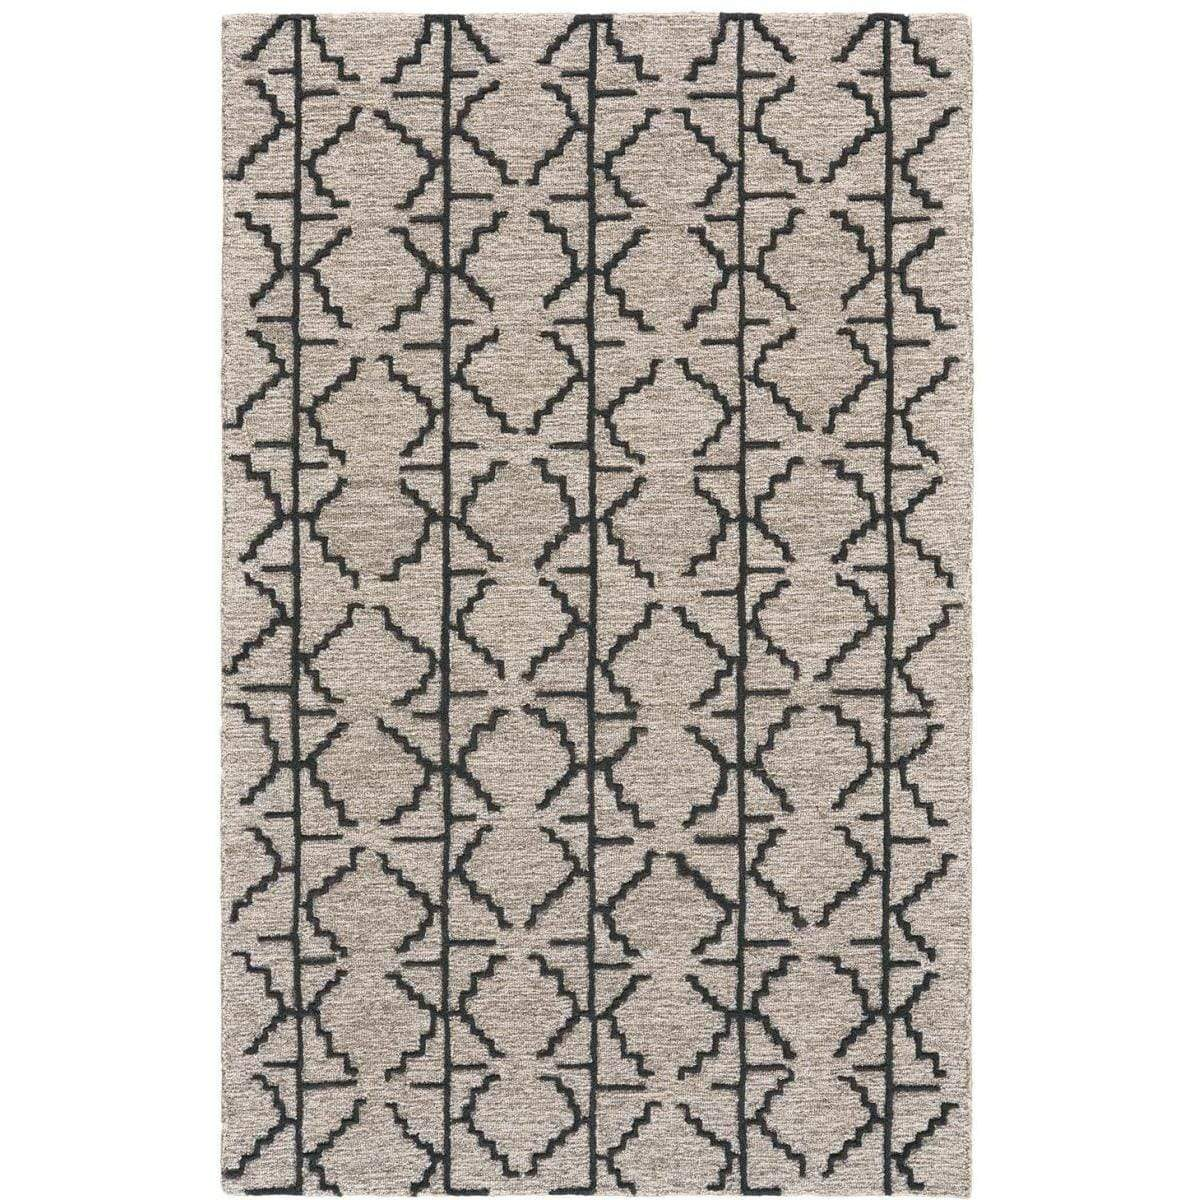 Feizy Home Enzo Rug - Brown - 162